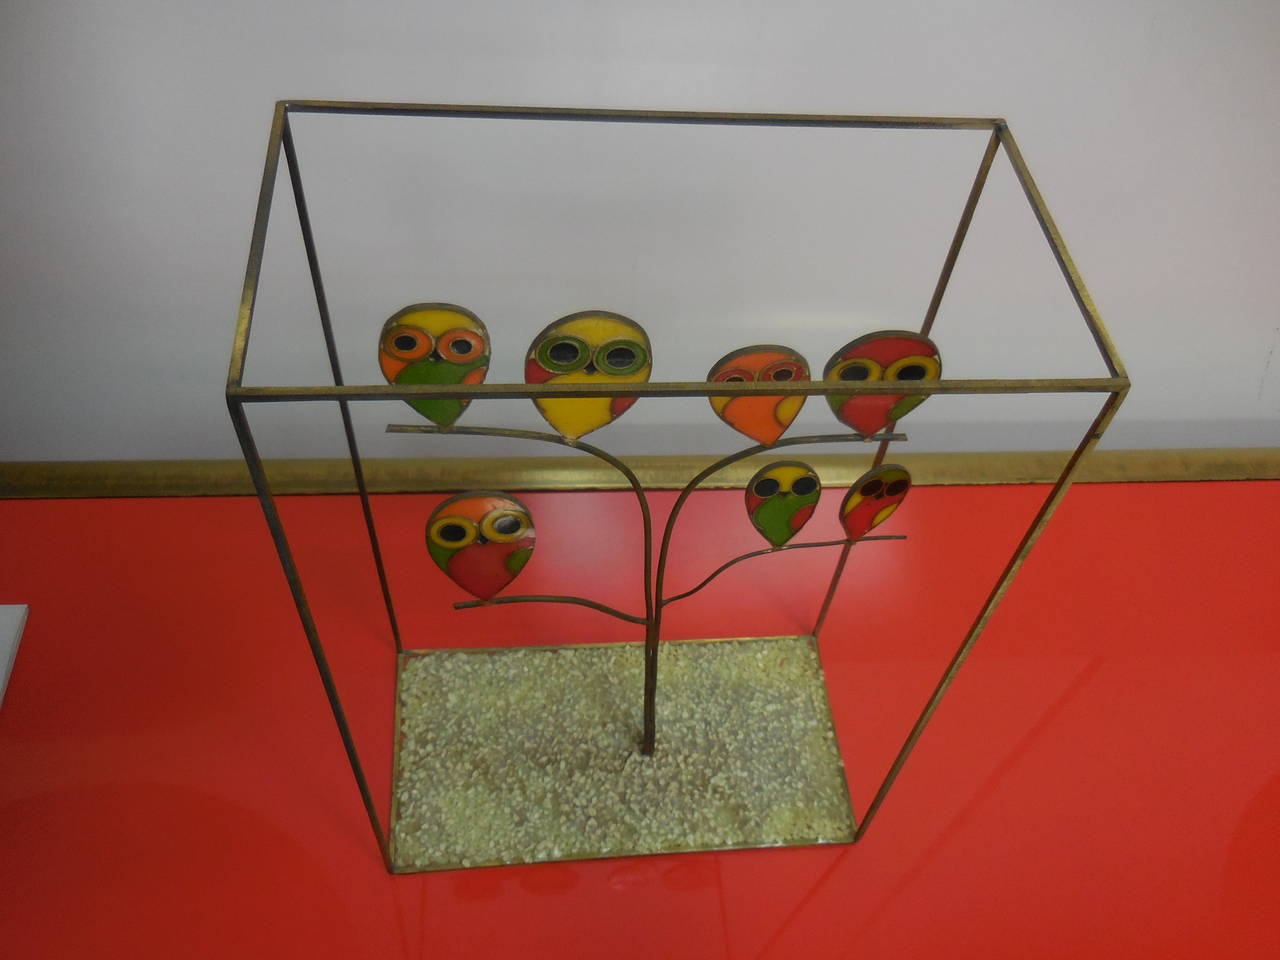 Mid-20th Century Whimsical Mid-Century Sculpture with Owls For Sale